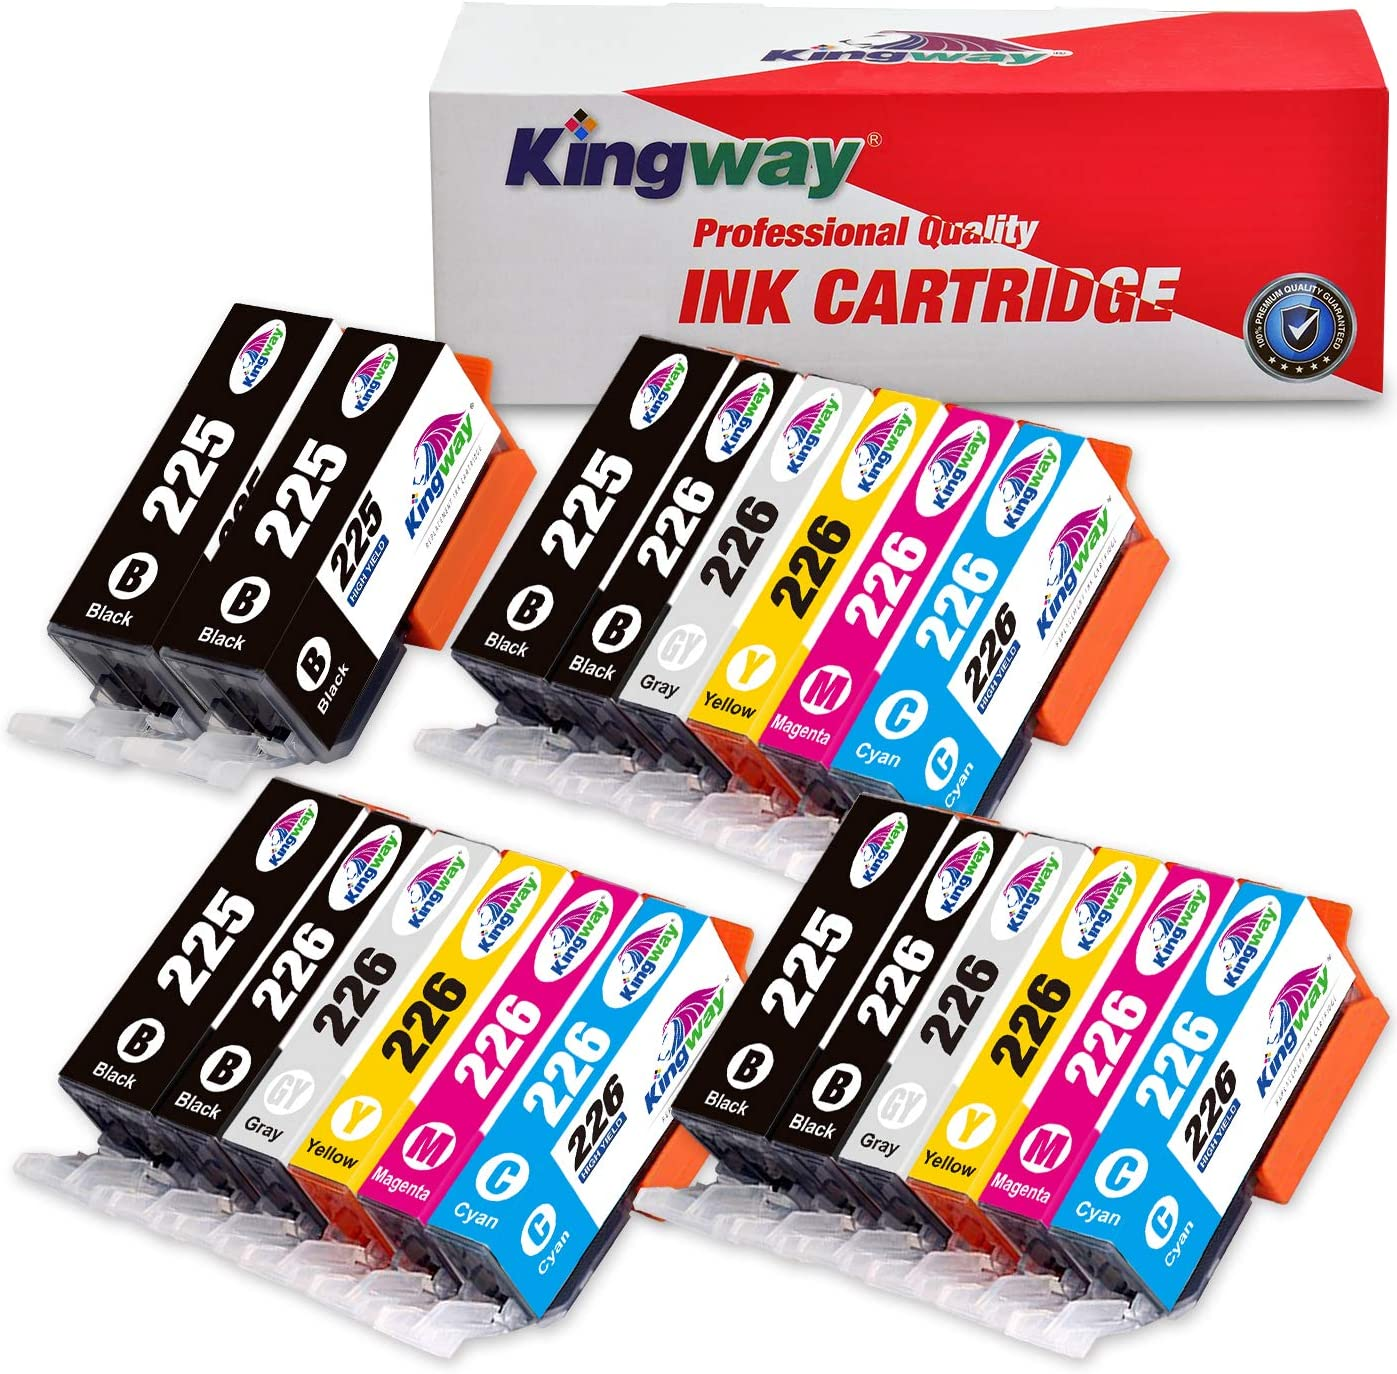 Kingway Compatible Ink Cartridge Replacement PGI-225 CLI-226 PIXMA MG6120 MG8120 MG6220 MG8220 MG8120B IX6520 MG5320 MG5220 MX882 MX892 IP4920 MG5120 MG5210 MG6200 Printer 20 Pack(3 Sets + 2 PGBK)